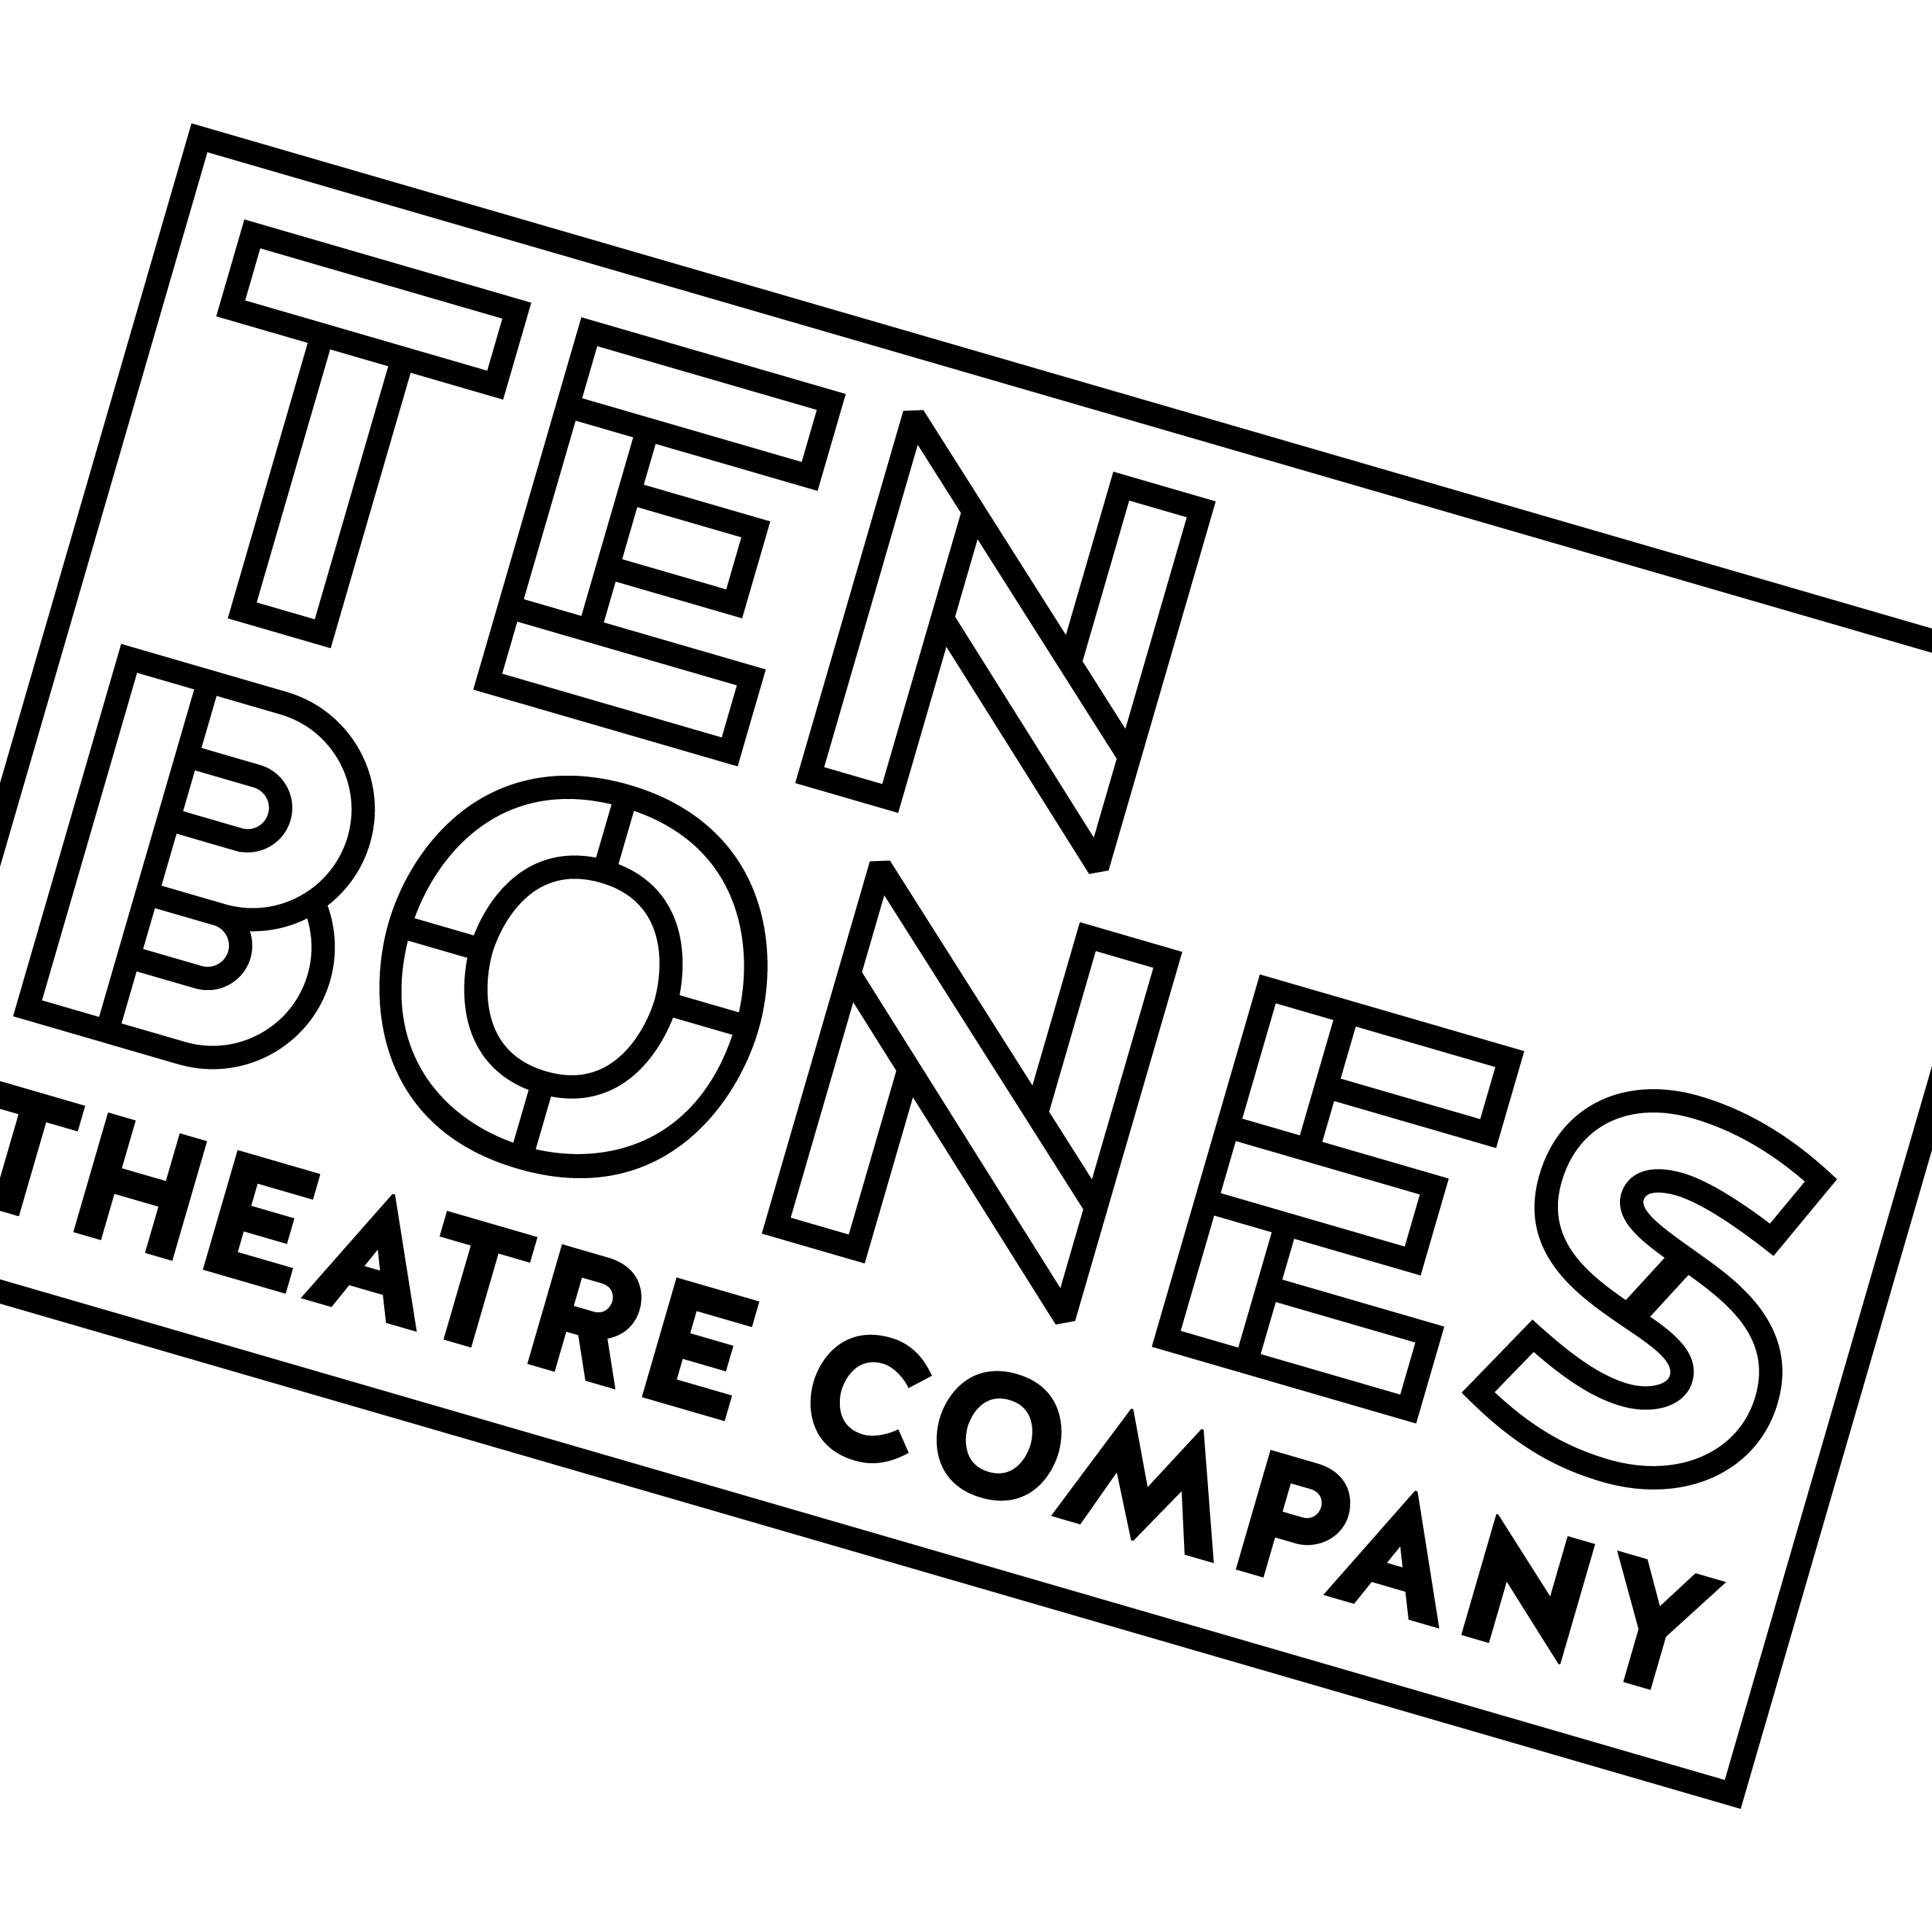 Ten Bones Theatre Company: Producer in In a Little Room